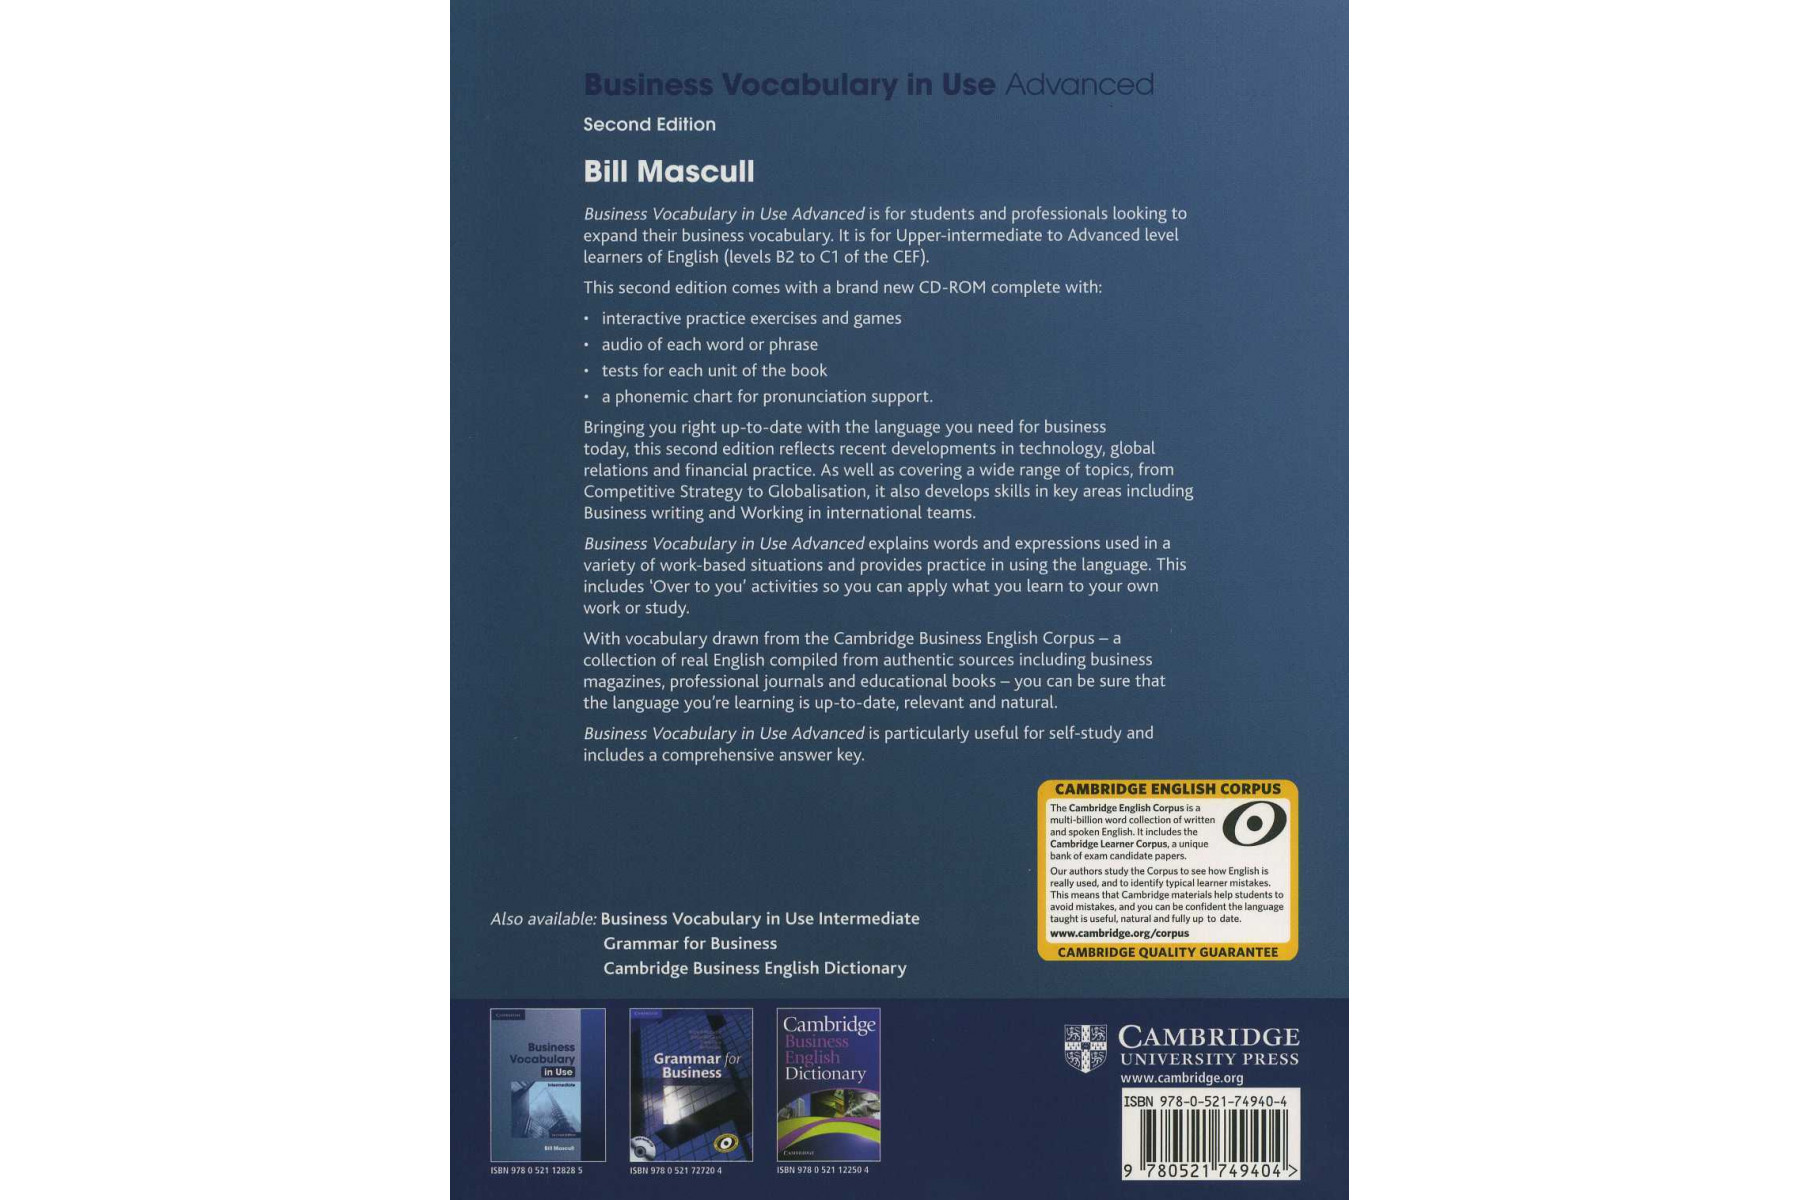 Business Vocabulary in Use: Advanced Second edition